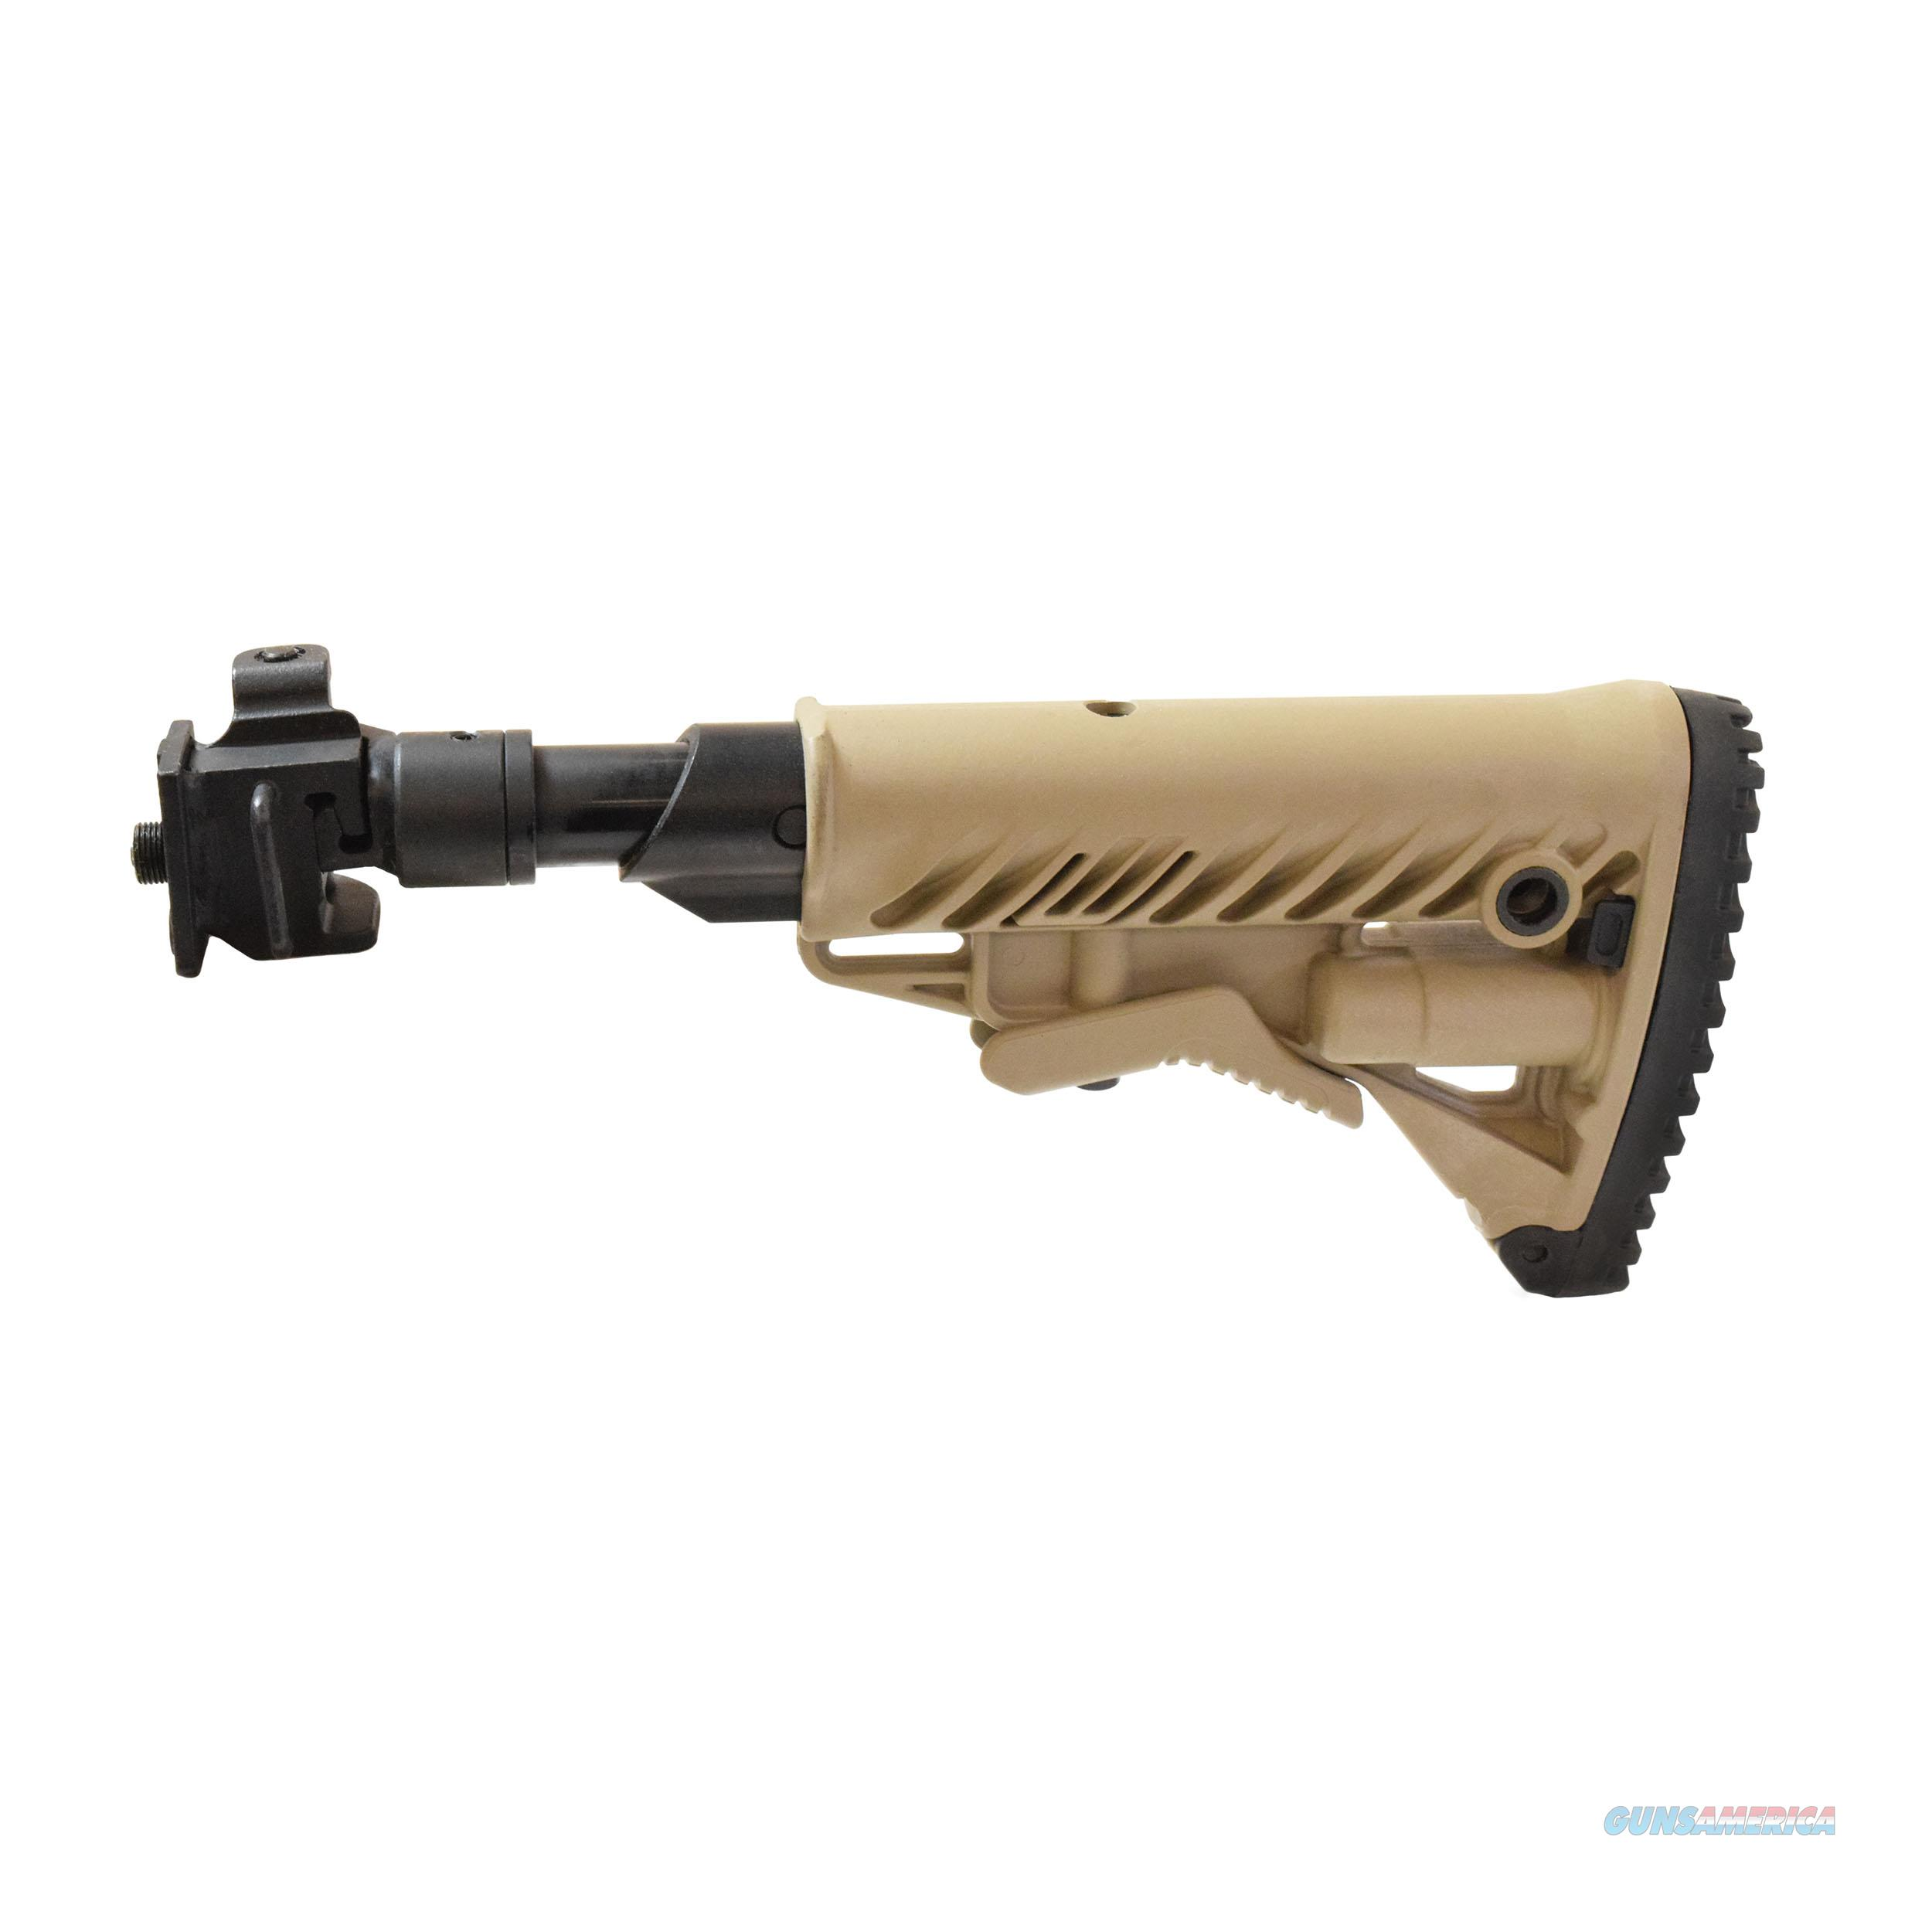 Mako Group Galil Style Recoil Compensating Folding Collapsible Buttstock System M4VZ SB-FDE  Non-Guns > Gunstocks, Grips & Wood